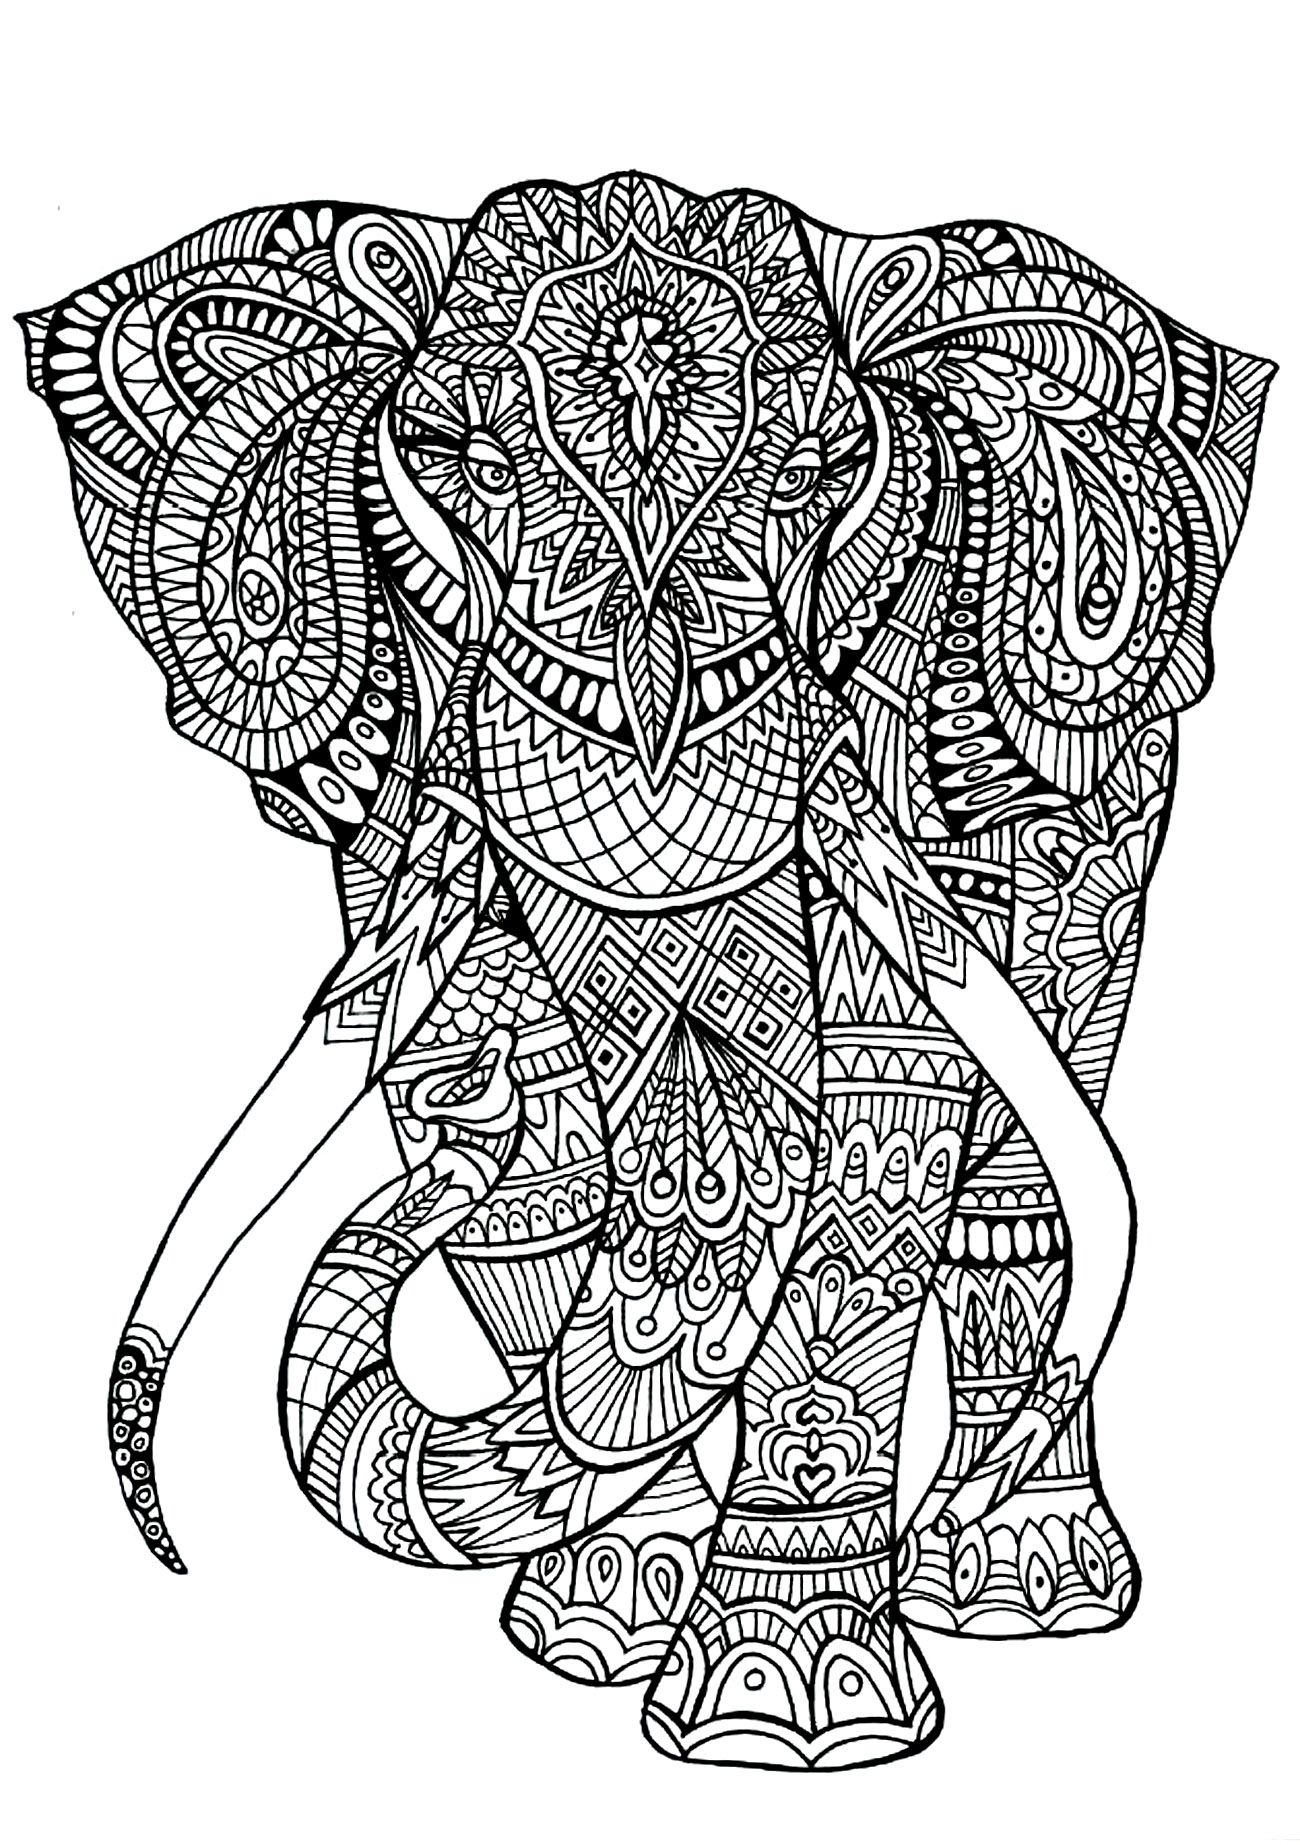 Free Coloring pages printables Fun activities Adult coloring